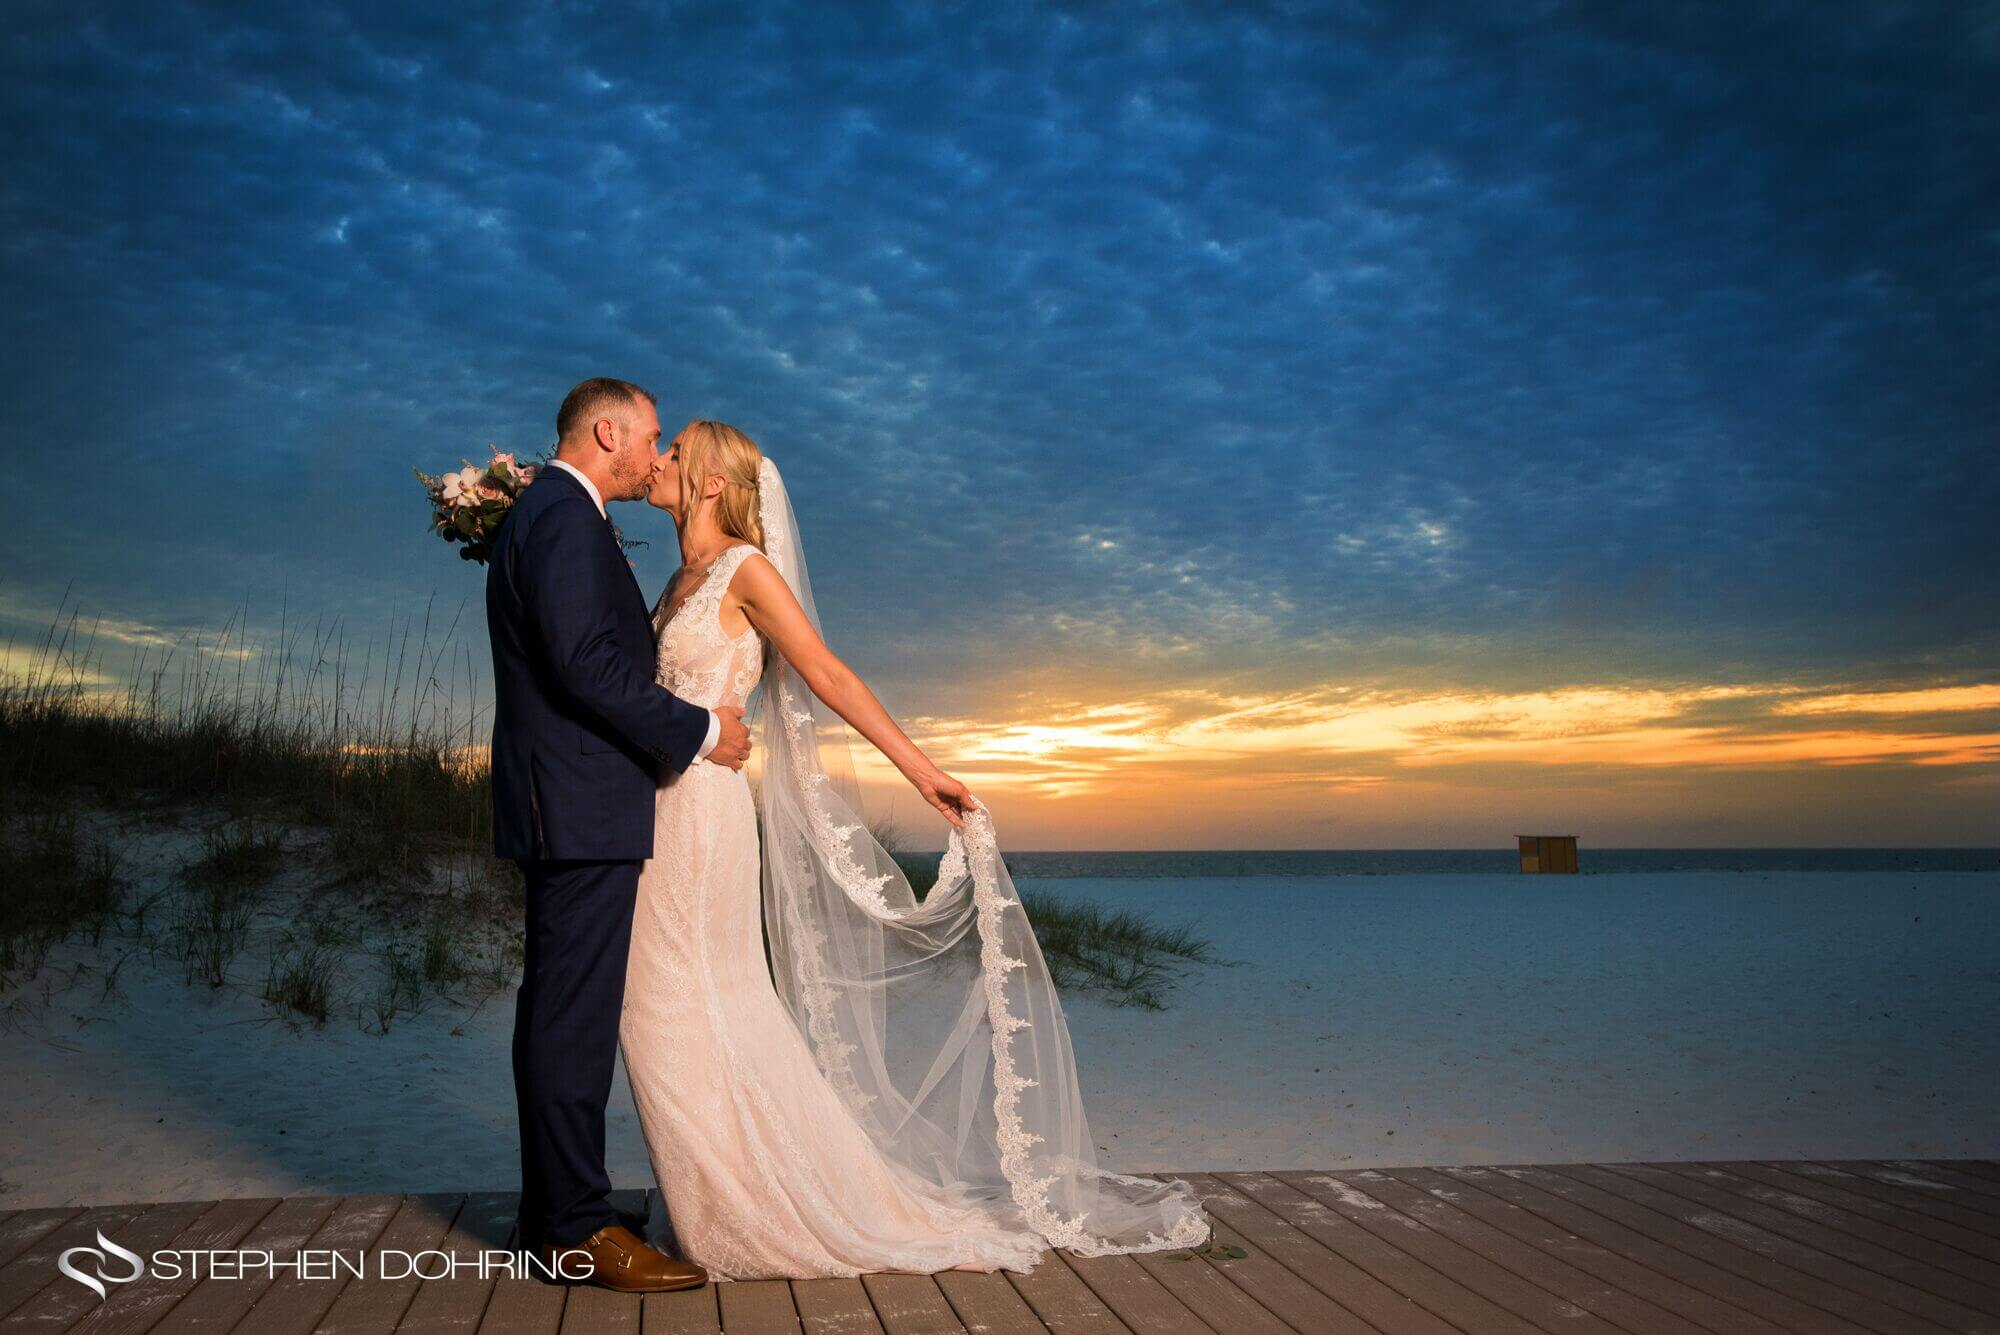 Special Moments Event Planning – Clearwater Beach wedding planner- Sandpearl wedding – Clearwater Beach wedding - bride and groom on the beach as sunset